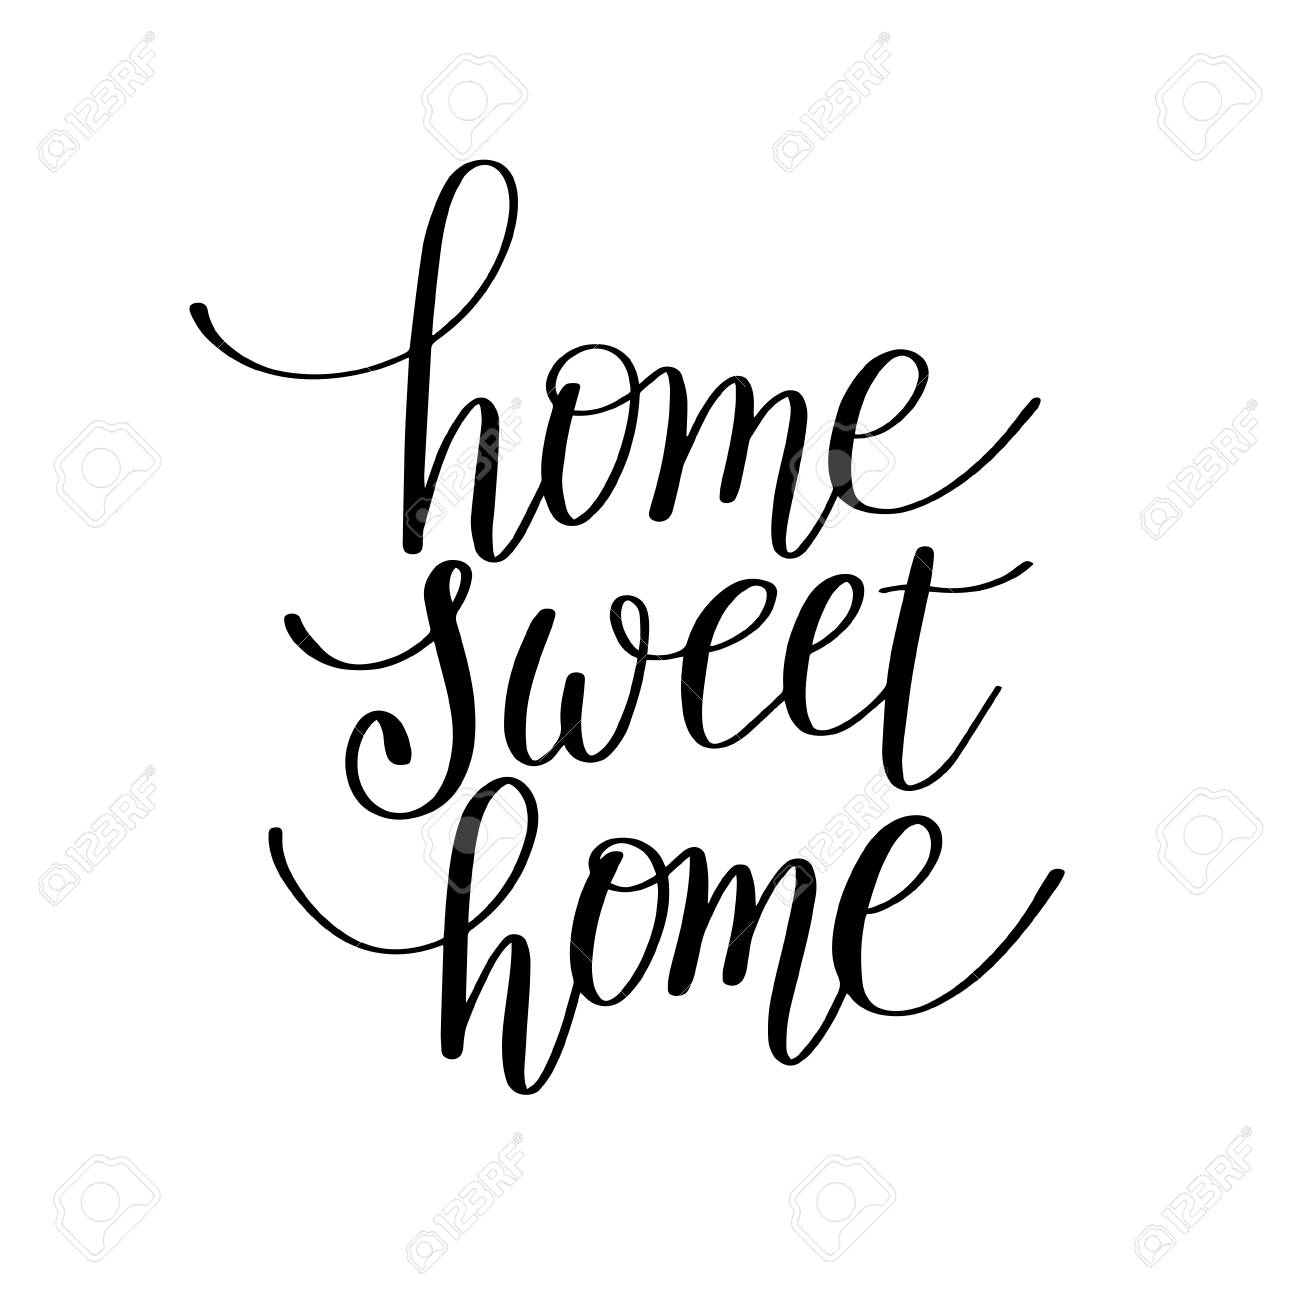 Home Sweet Home Handwritten Calligraphy Lettering Quote To Design